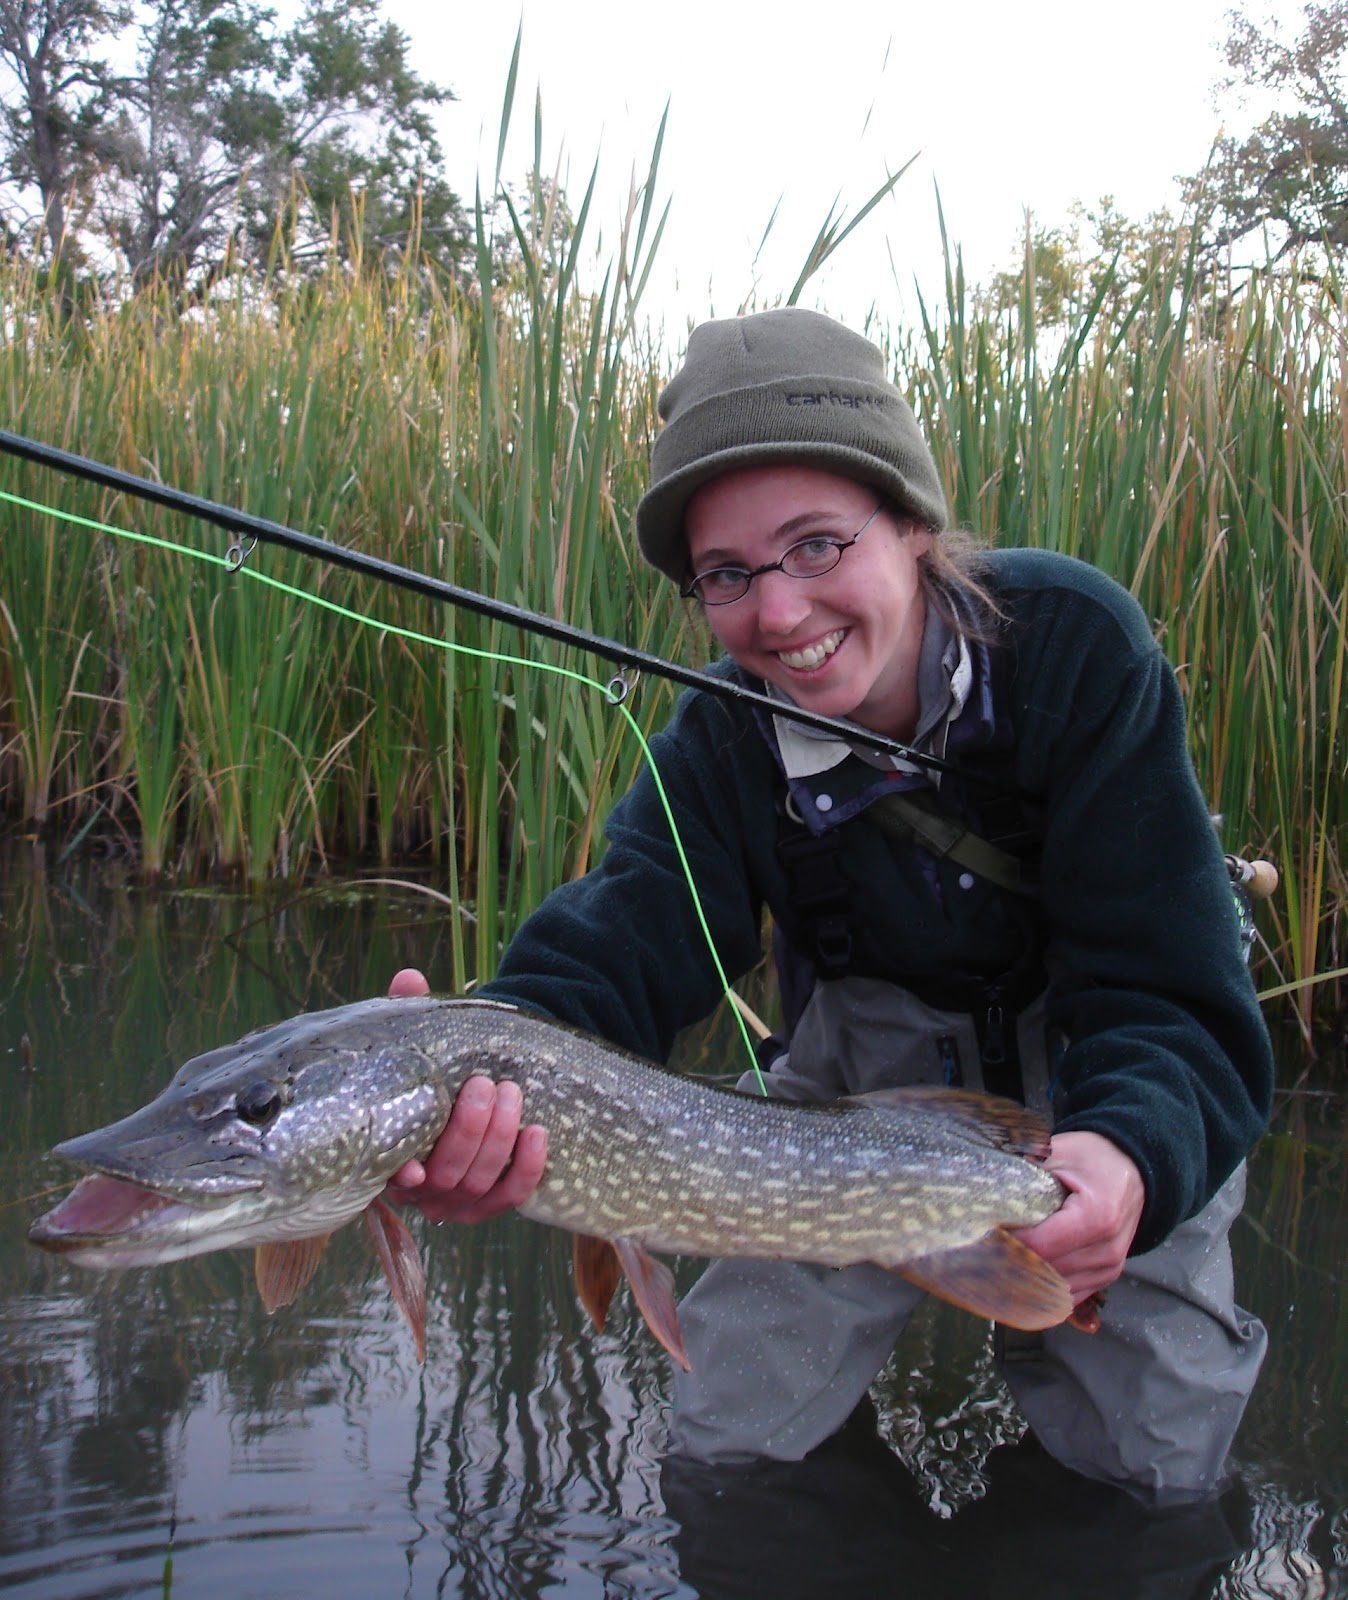 Colorado fly fishing reports september 2012 for Pike fishing colorado